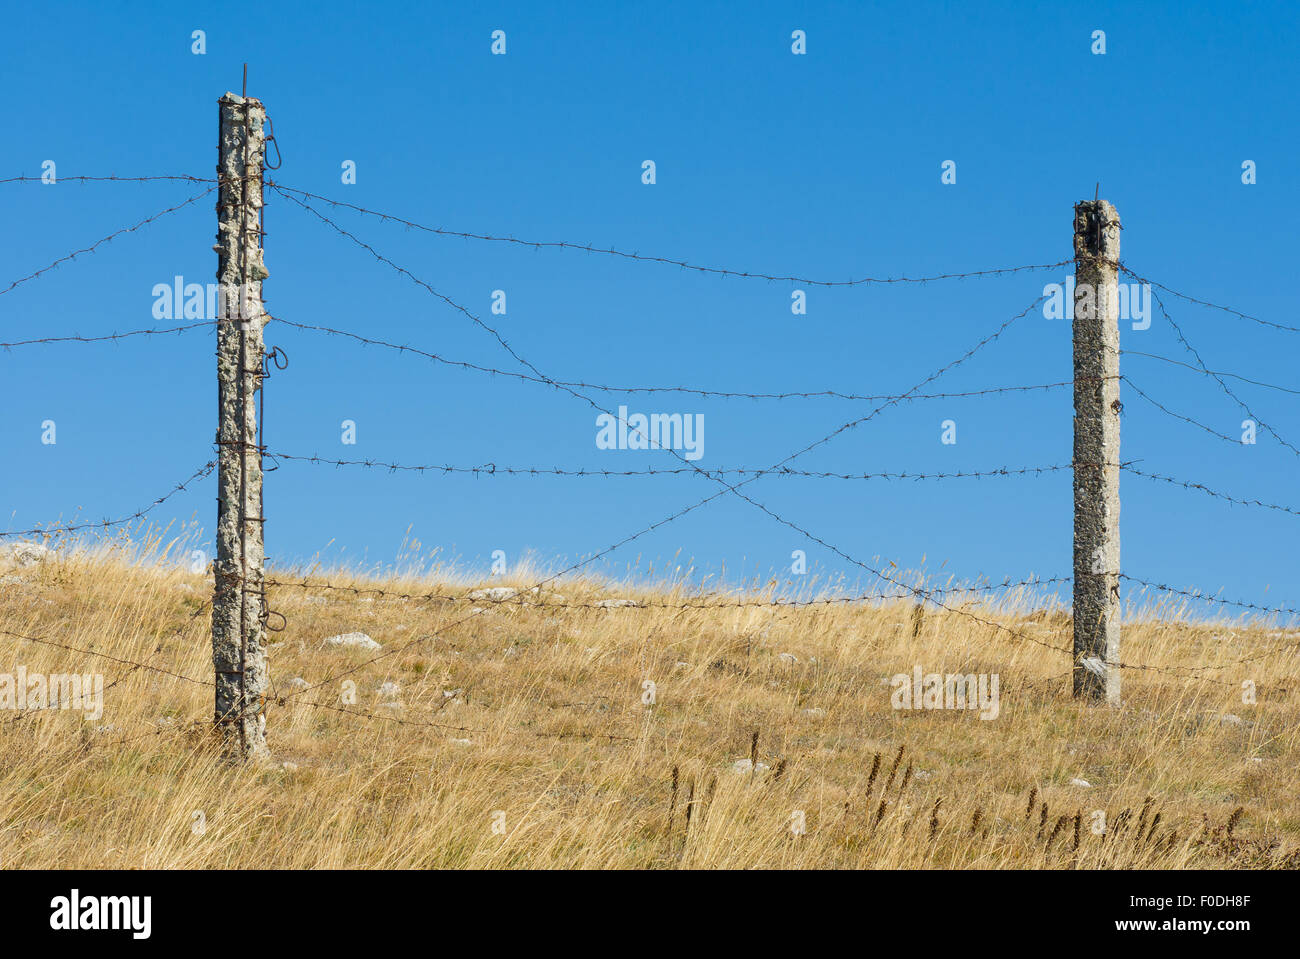 Barrier with barbed wire against blue cloudless sky - Stock Image